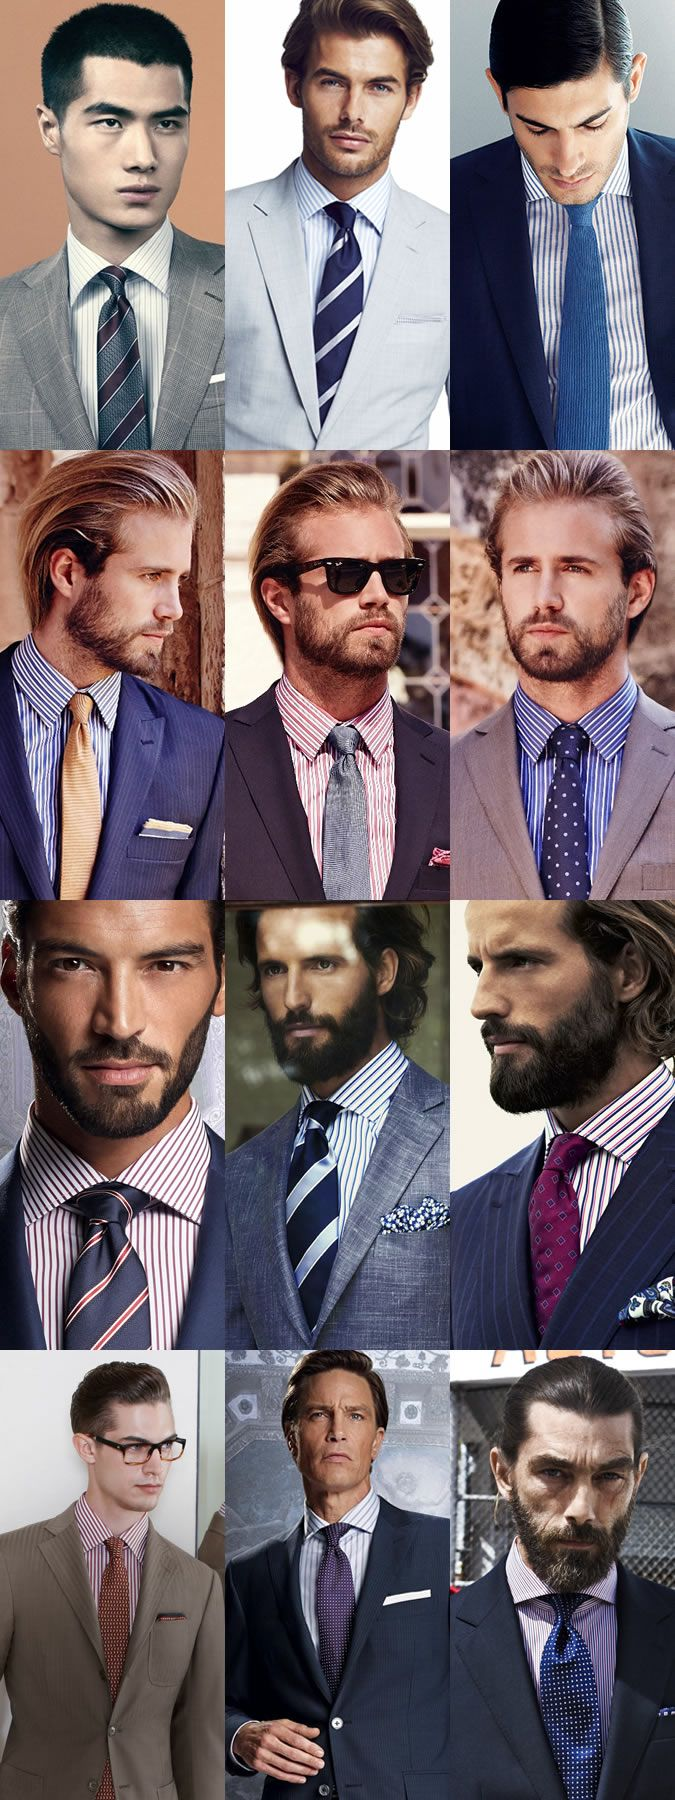 Men's Striped Shirts and Tie Combinations Lookbook